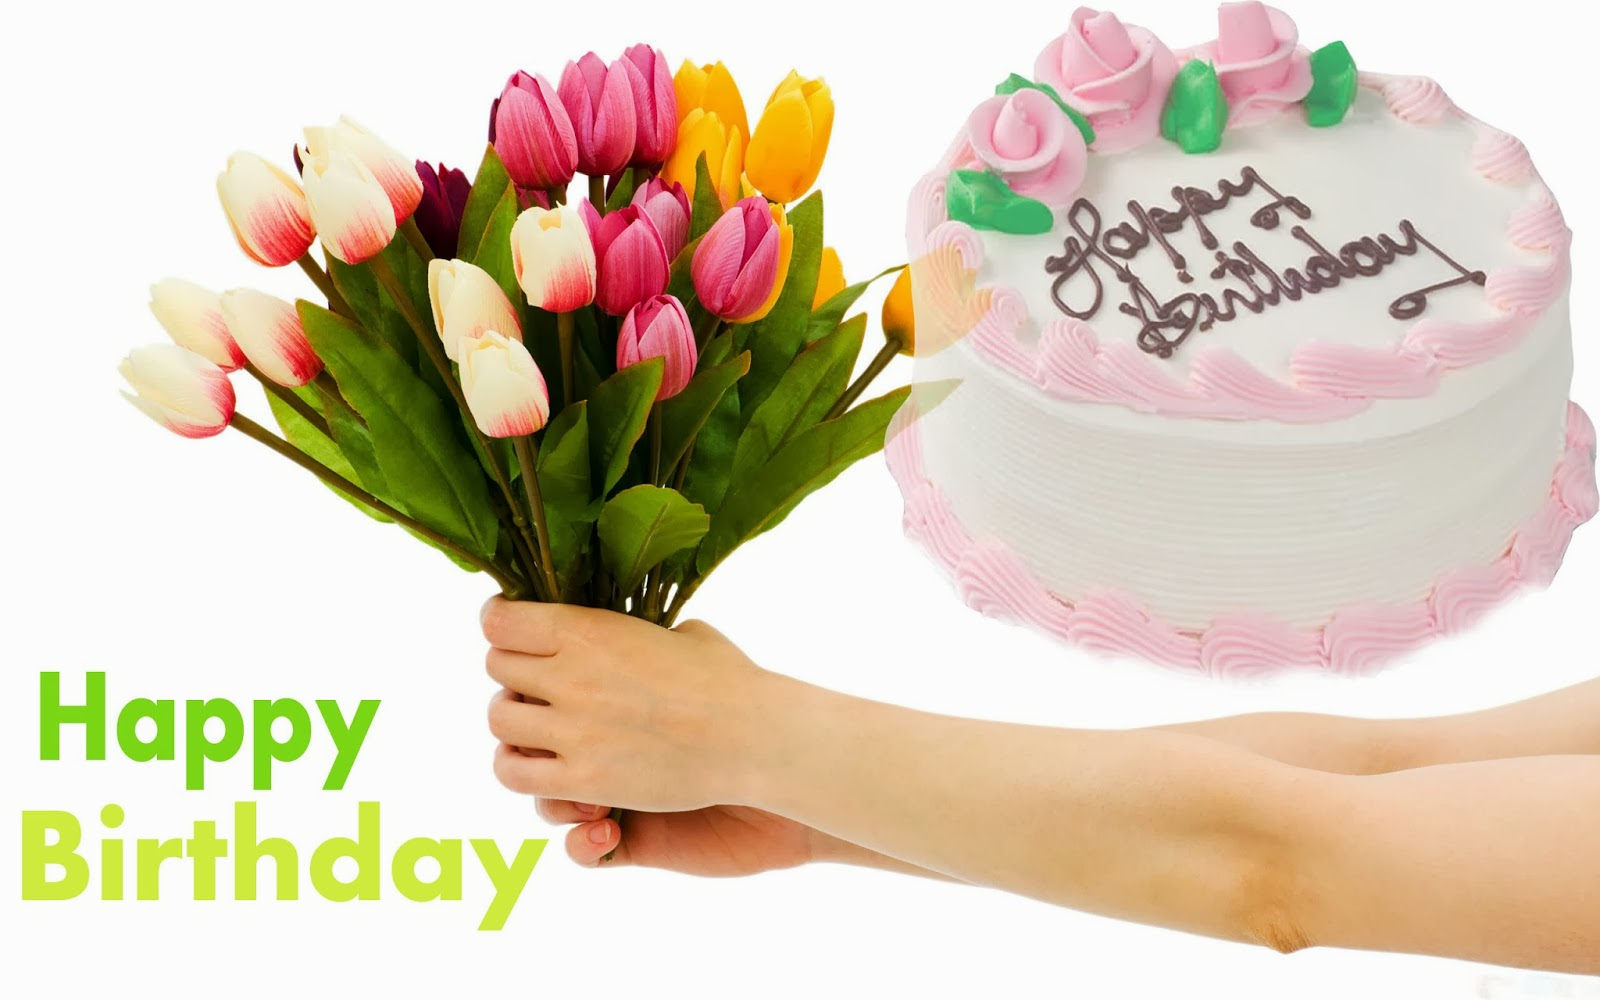 birthday images with quotes ; Birthday-Wishes-211